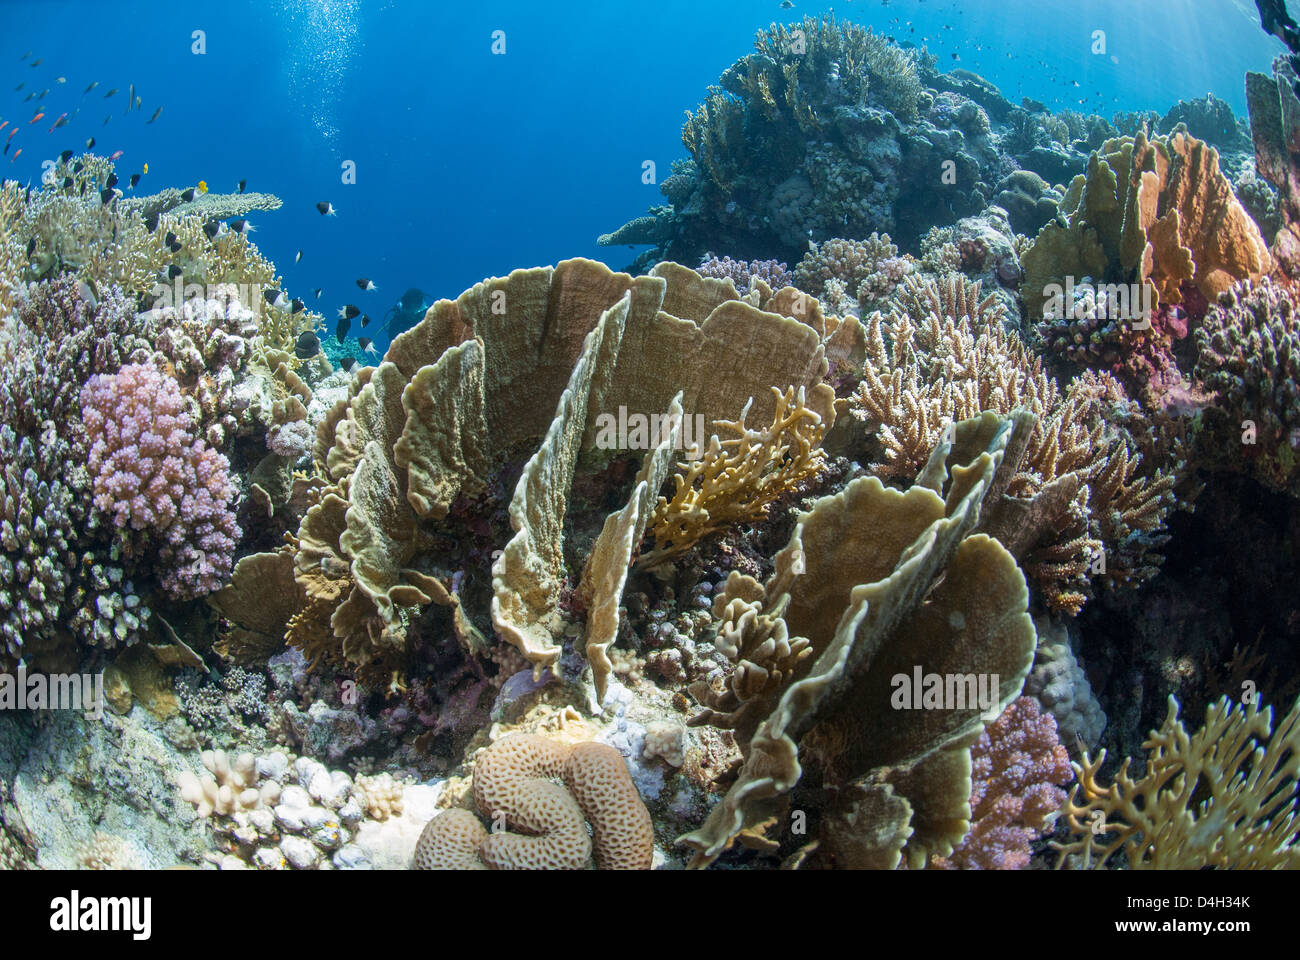 Tropical coral reef scene in natural lighting, Ras Mohammed National Park, Sinai, Egypt, Red Sea, Egypt, North Africa - Stock Image